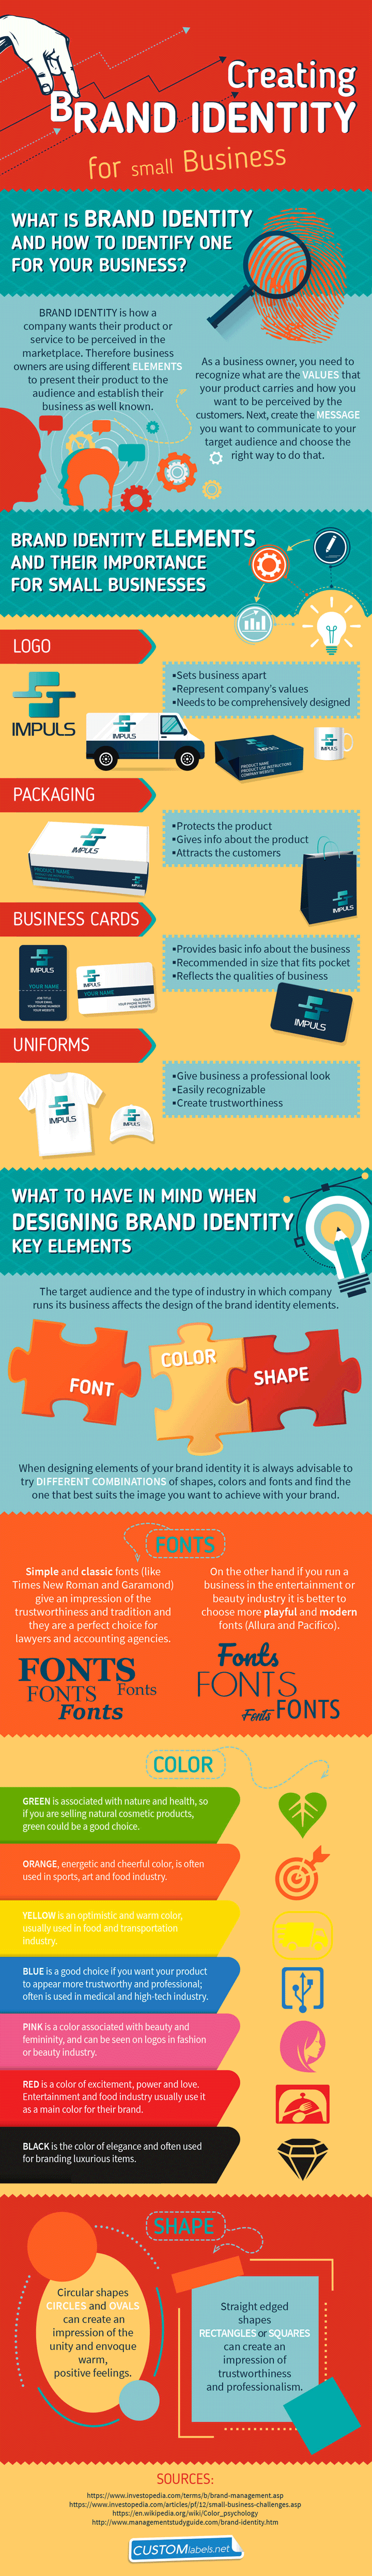 brand identity for your small business infographic